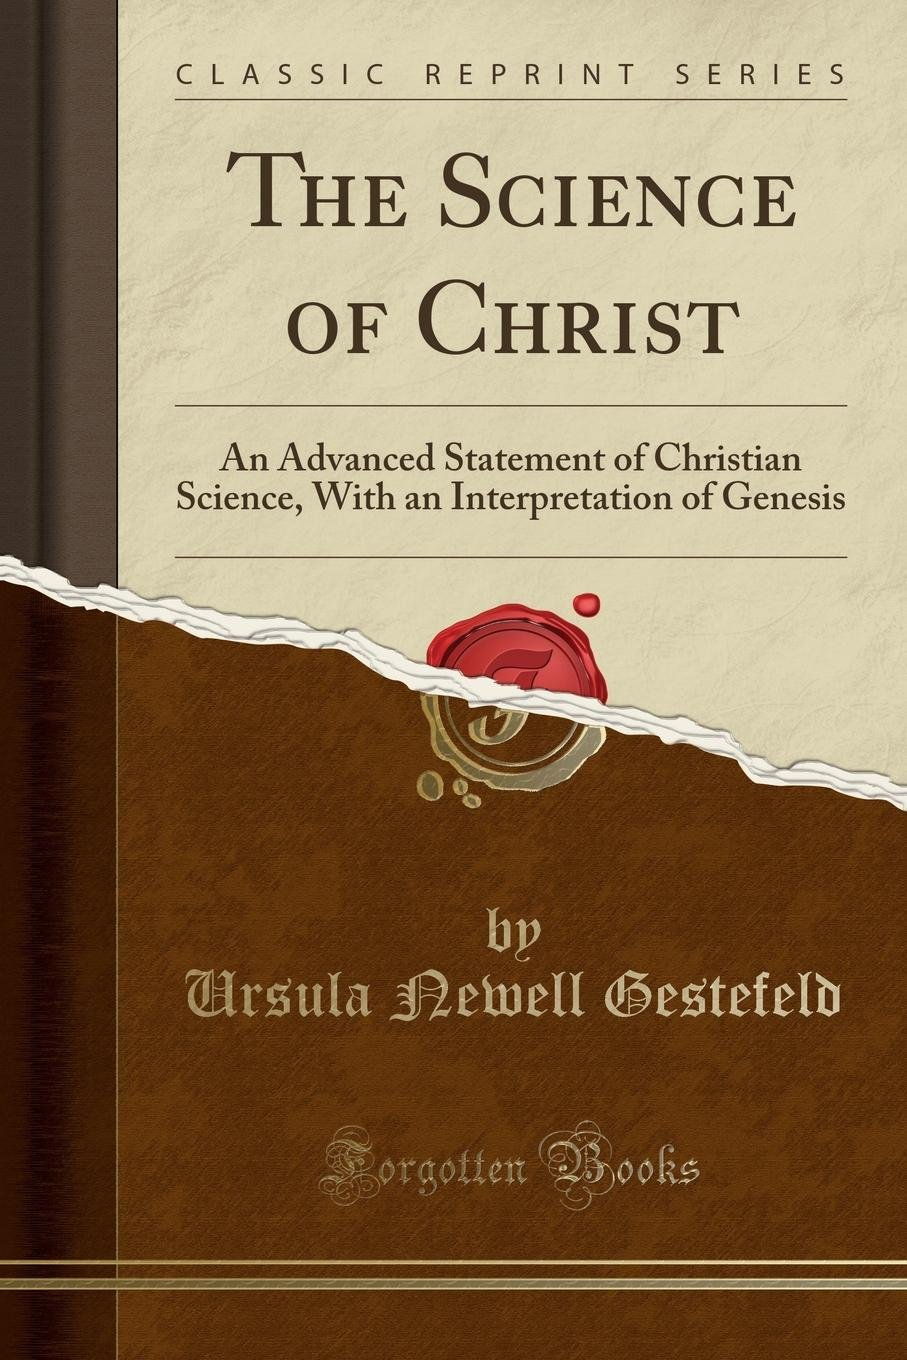 The Science of Christ: An Advanced Statement of Christian Science, With an Interpretation of Genesis (Classic Reprint) pdf epub